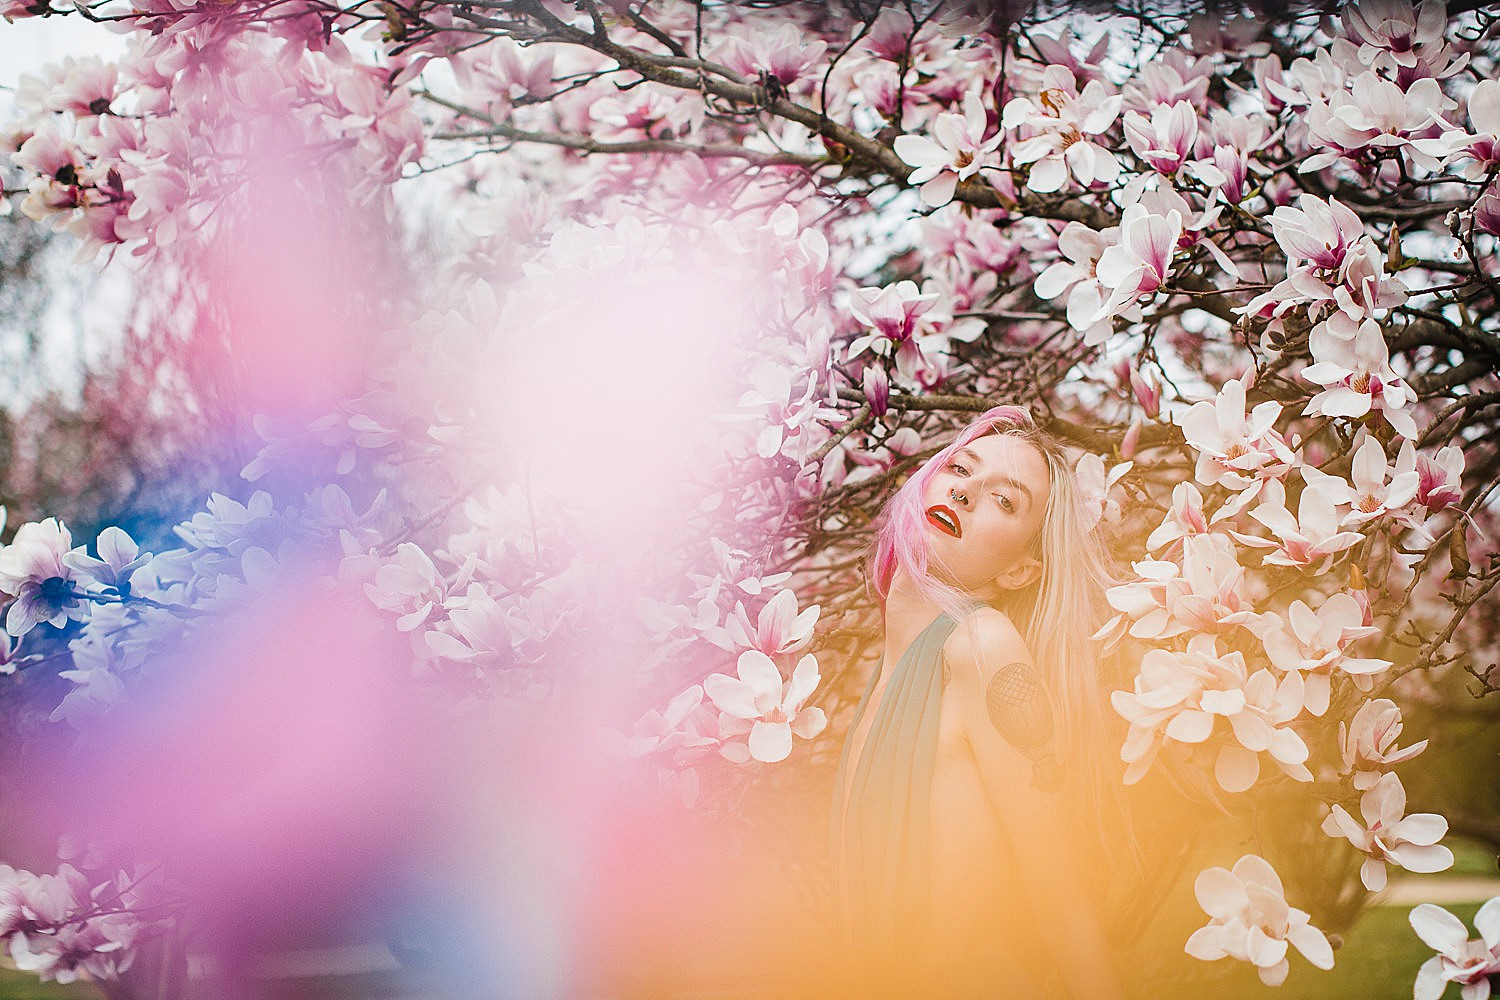 Photo of a young woman with pink hair and a teal dress standing in a tree of magnolia blossoms.